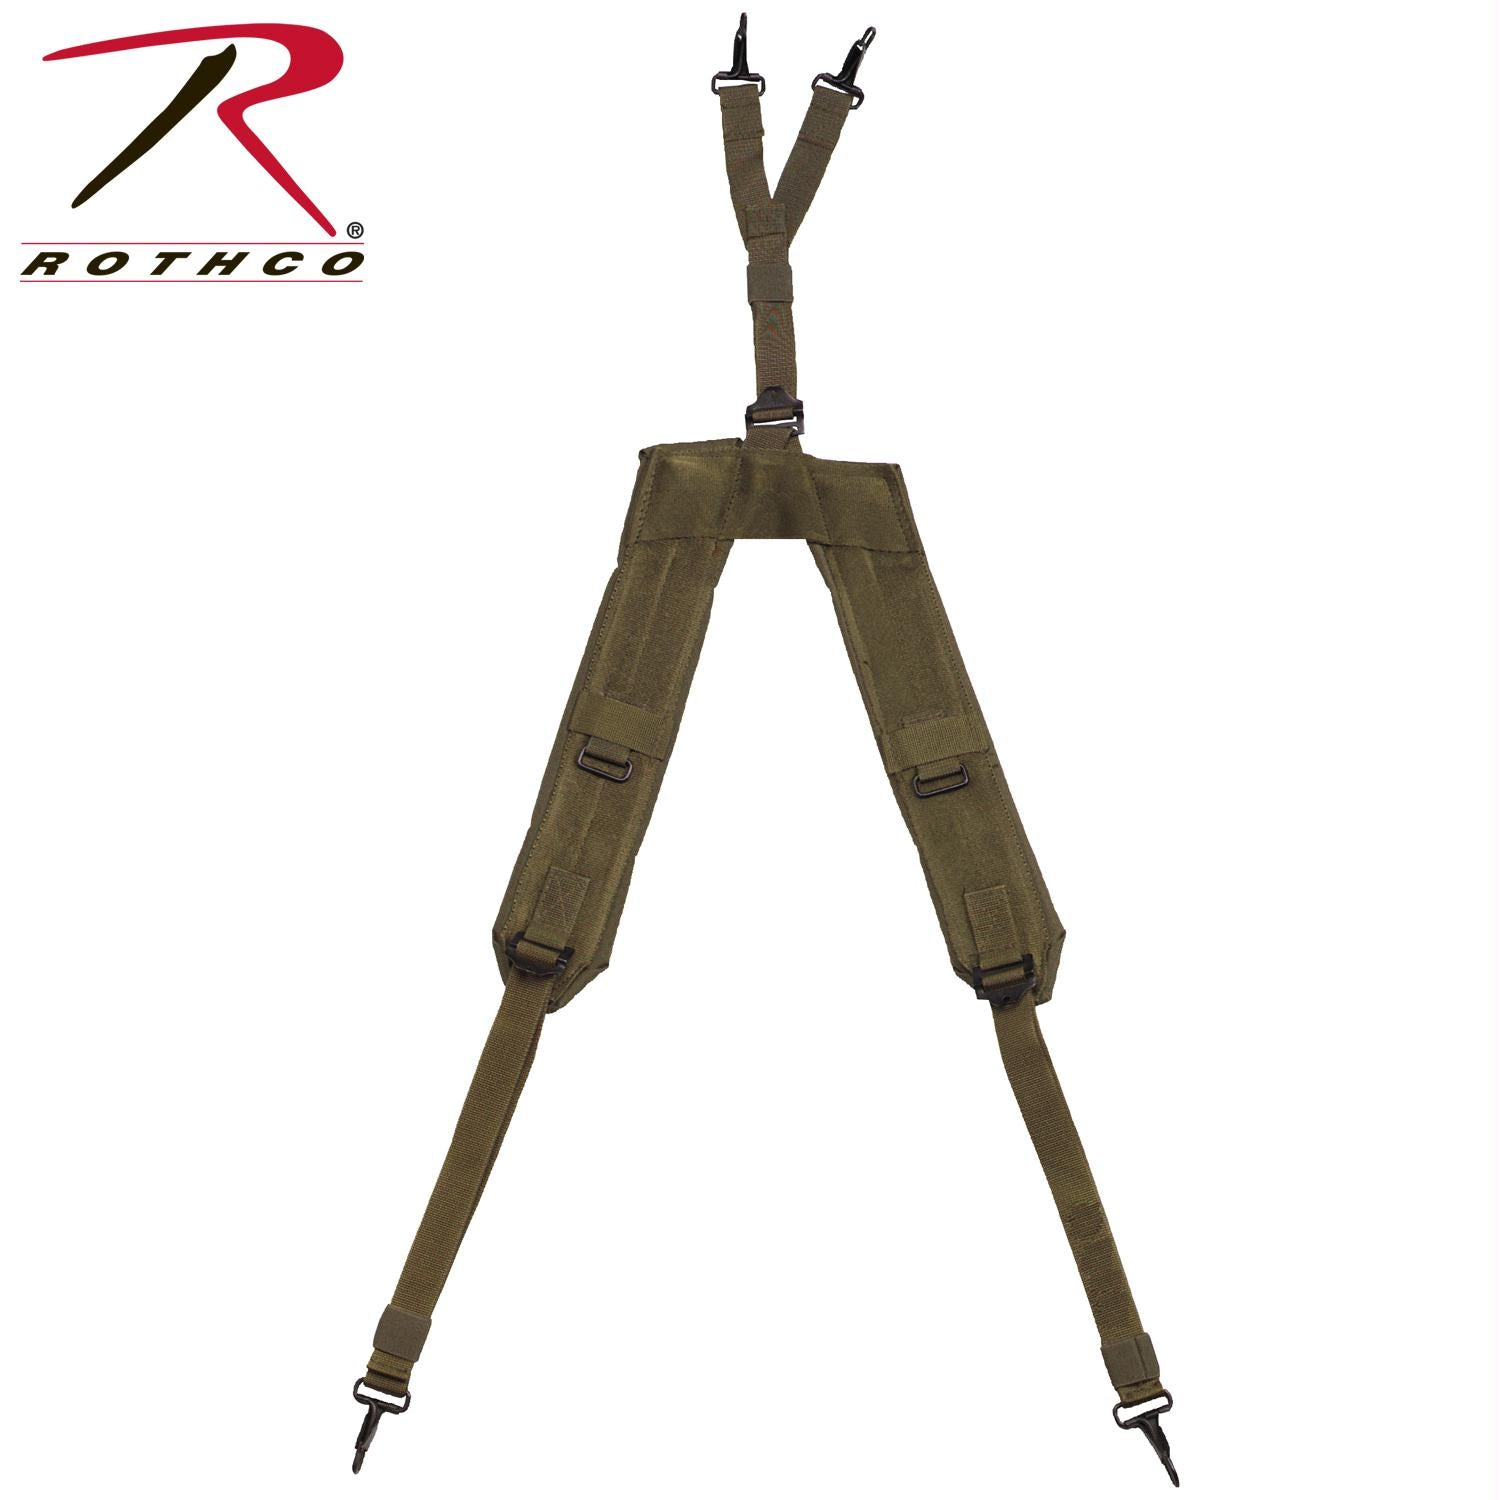 Rothco GI Type Enhanced ''Y'' LC-1 Suspenders - Olive Drab